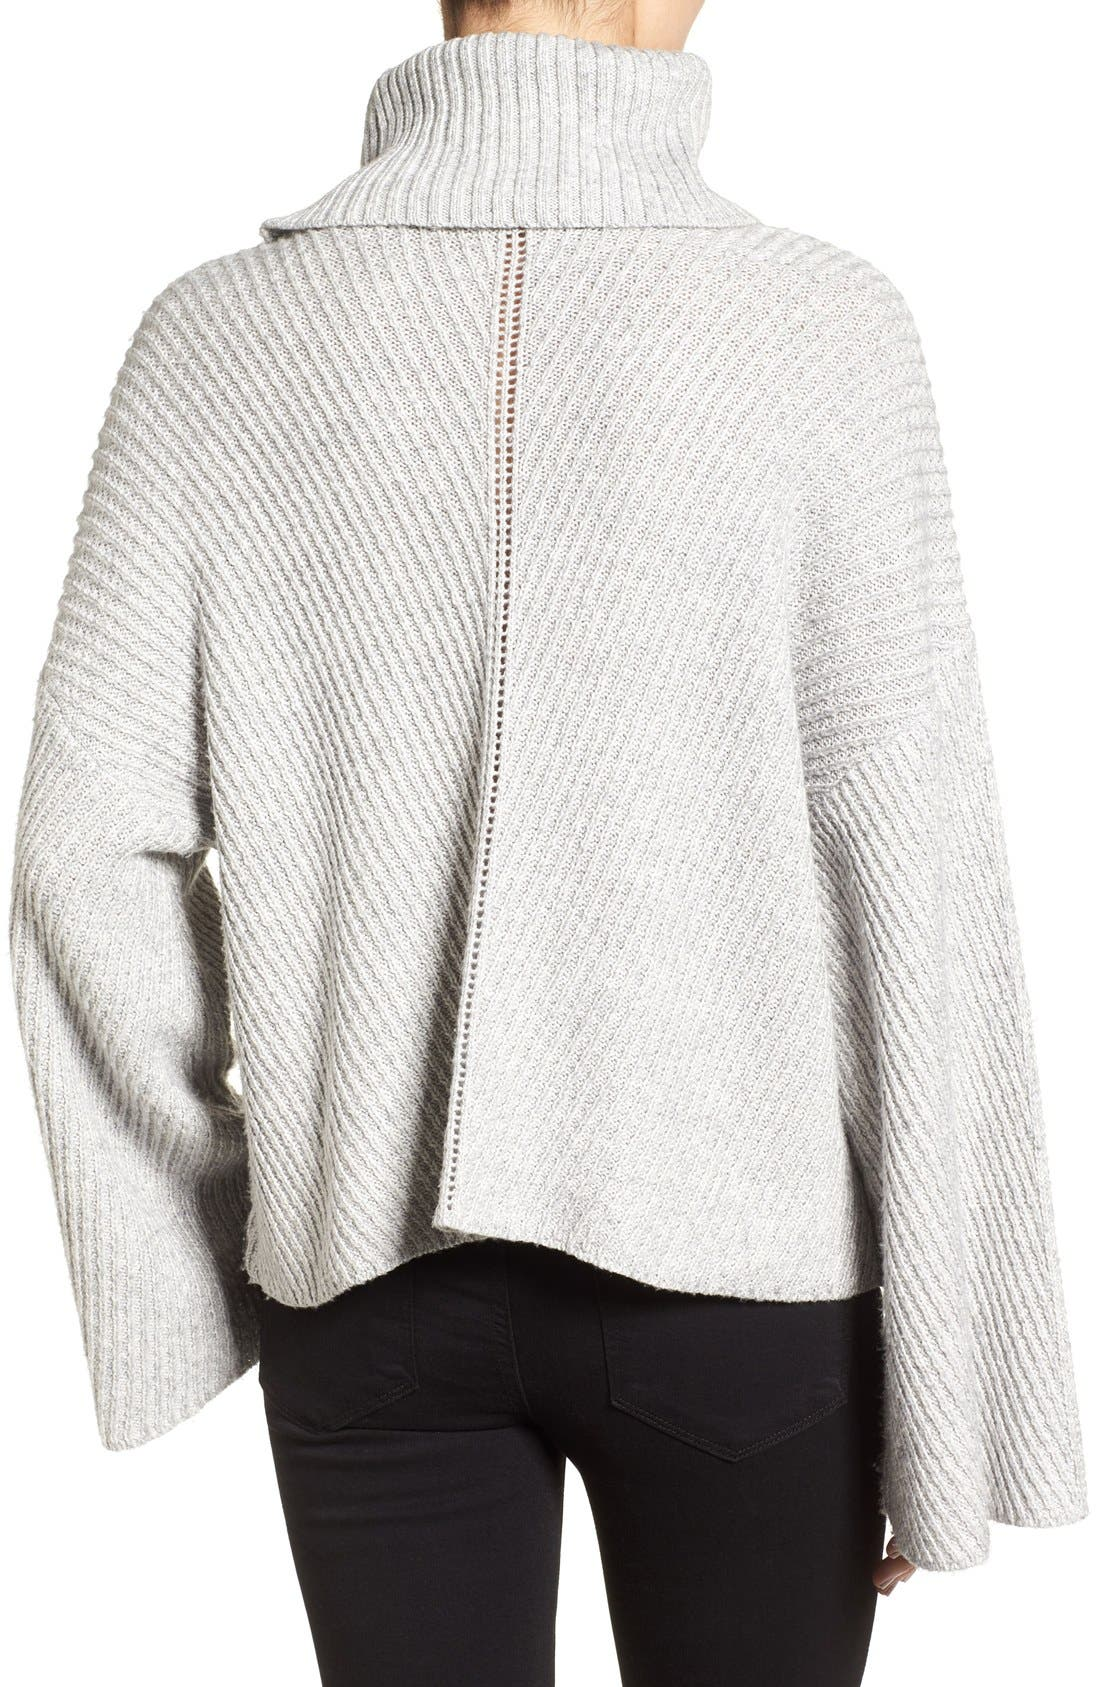 Phil Slouchy Sweater,                             Alternate thumbnail 4, color,                             057